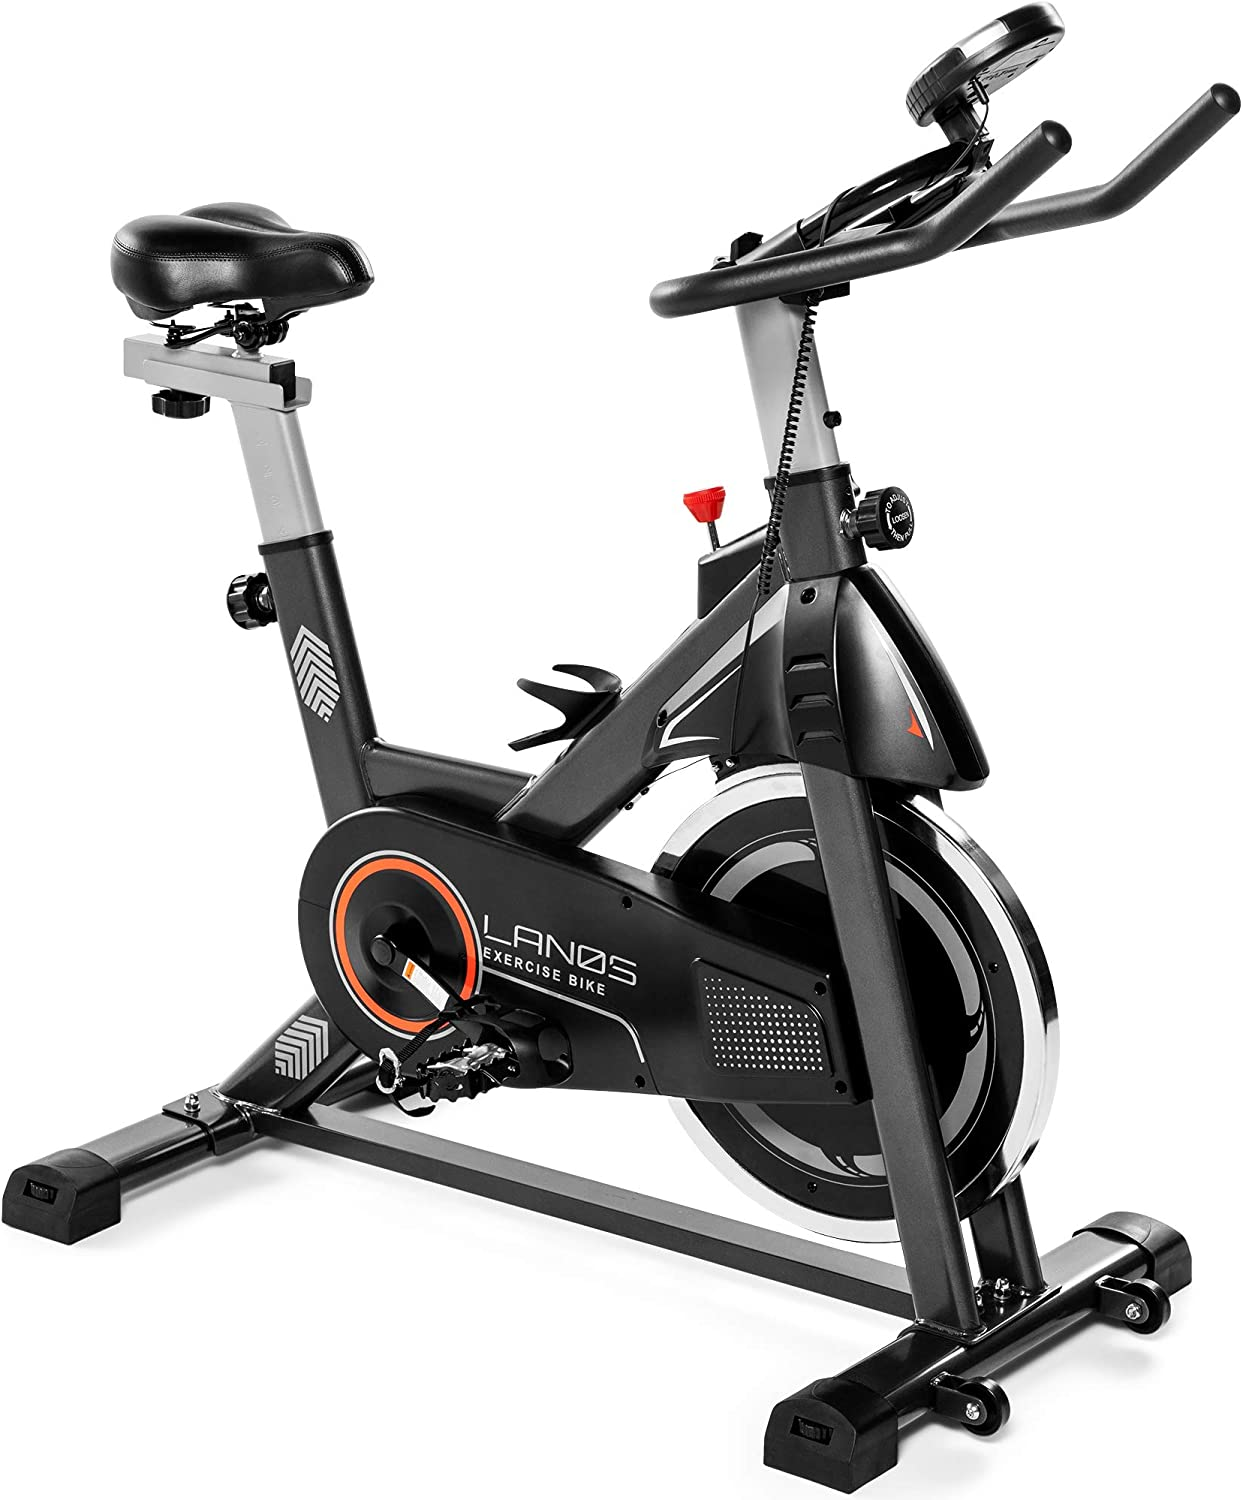 Lanos Exercise Bike, Stationary Bike for Indoor Cycling | The Perfect Exercise Bikes for Home Gym | Indoor Exercise Bike for Men and Women | Stationary Bike | Bicicletas Para Hacer Ejercicio en Casa